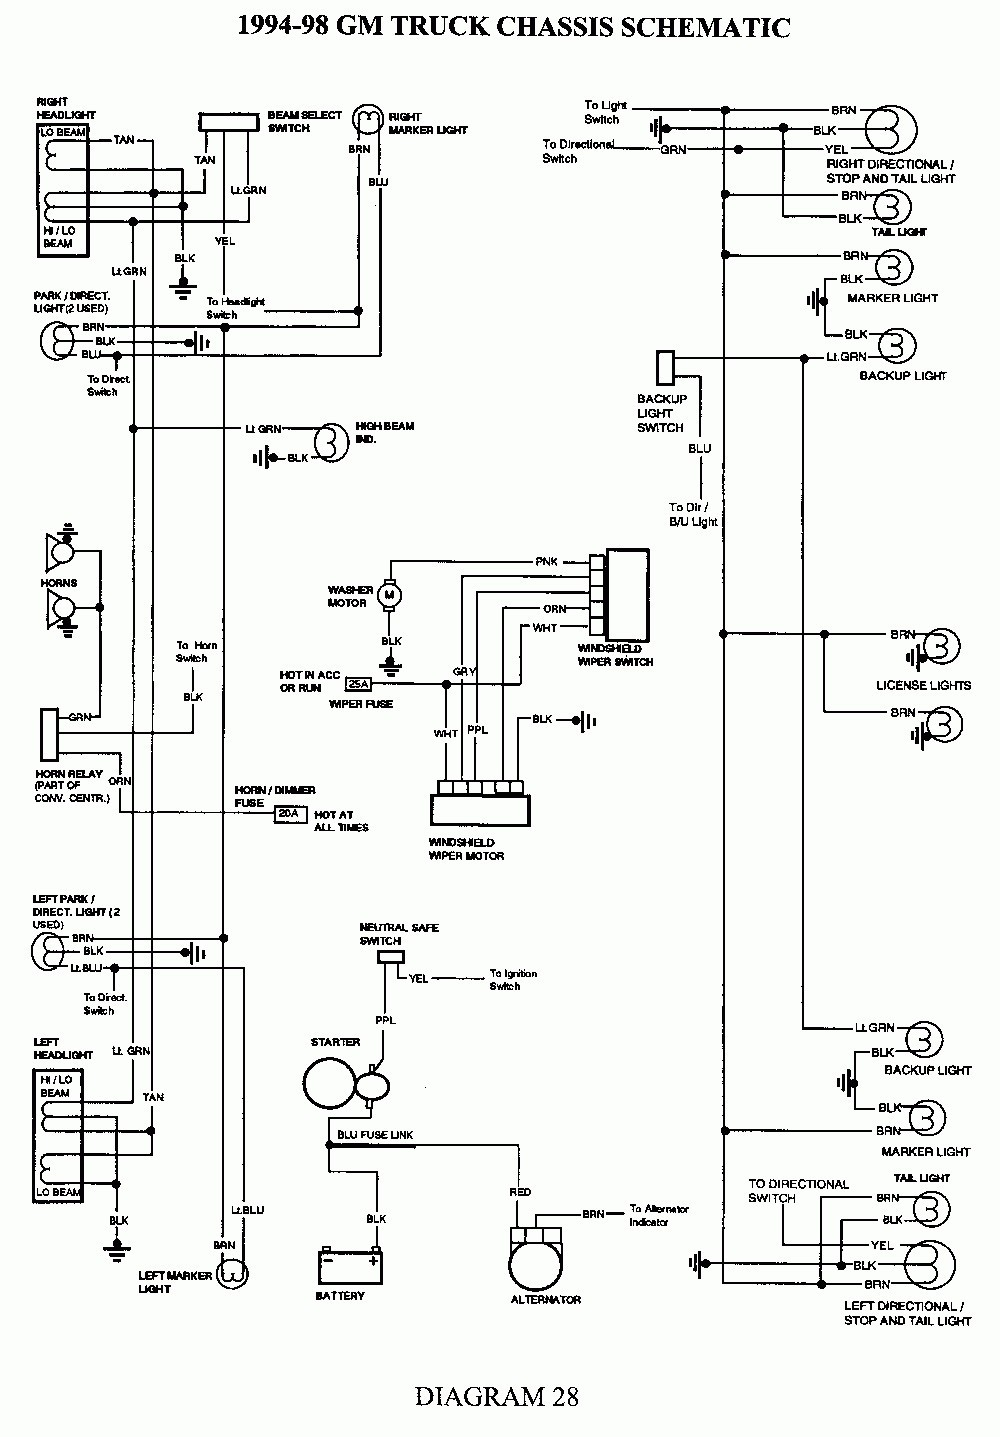 97 4 3 Vortec Wiring Diagram - Circuit Connection Diagram •  L Wiring Diagram on 97 cummins wiring diagram, 97 ford wiring diagram, 97 dodge wiring diagram, 97 powerstroke wiring diagram, 97 f350 wiring diagram, 97 engine wiring diagram, 97 chevy wiring diagram,